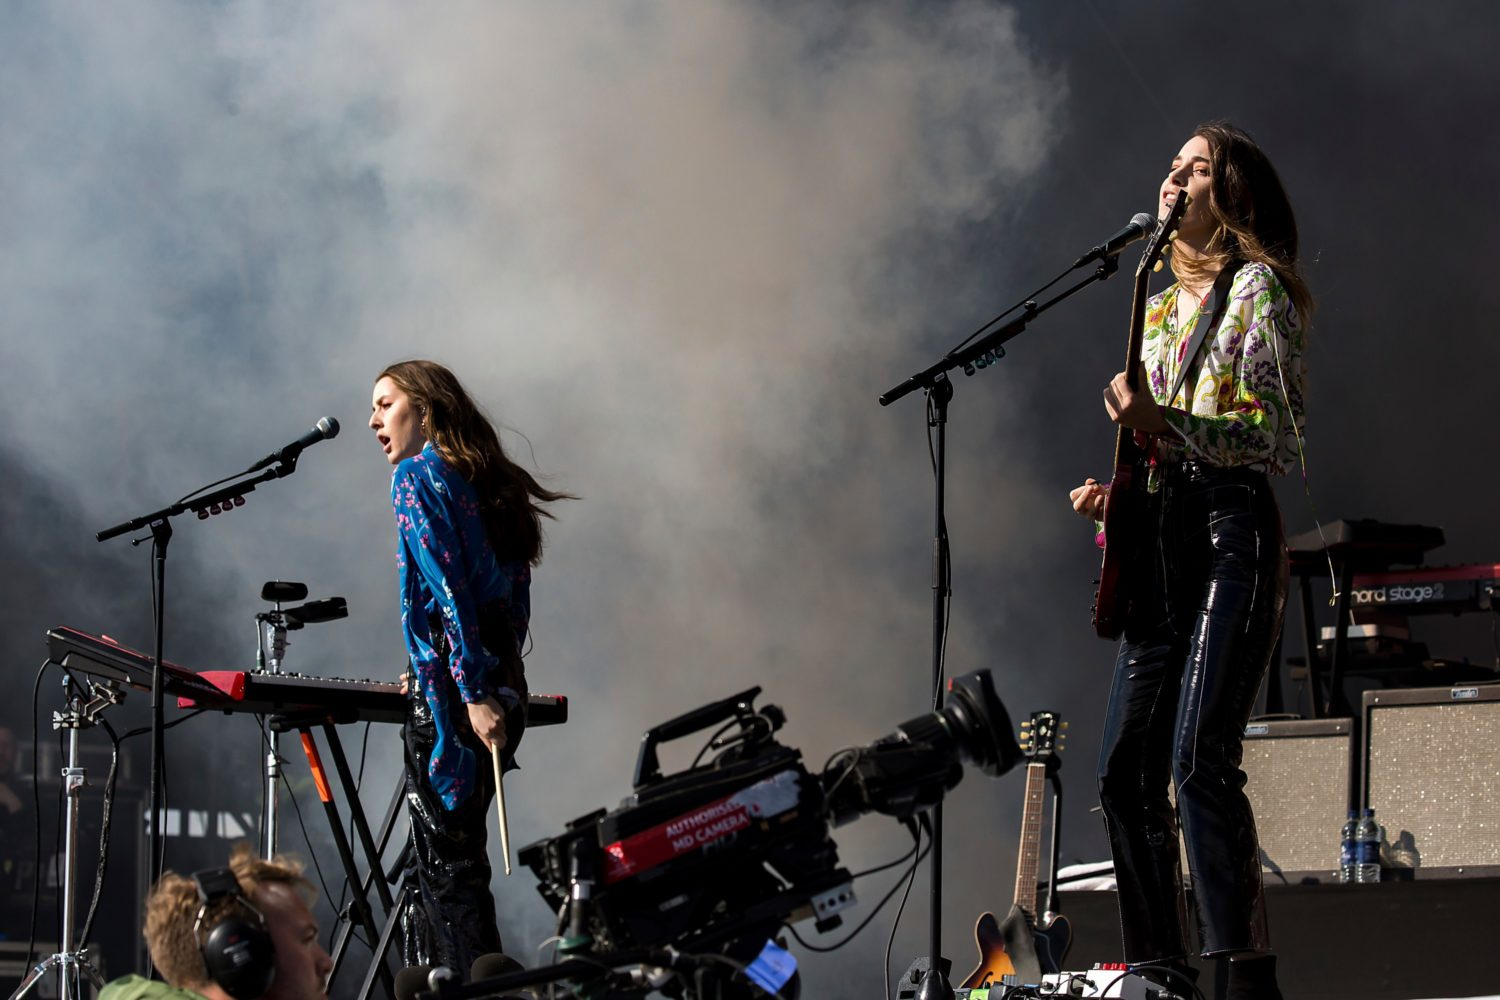 Two of the Haim sisters in concert